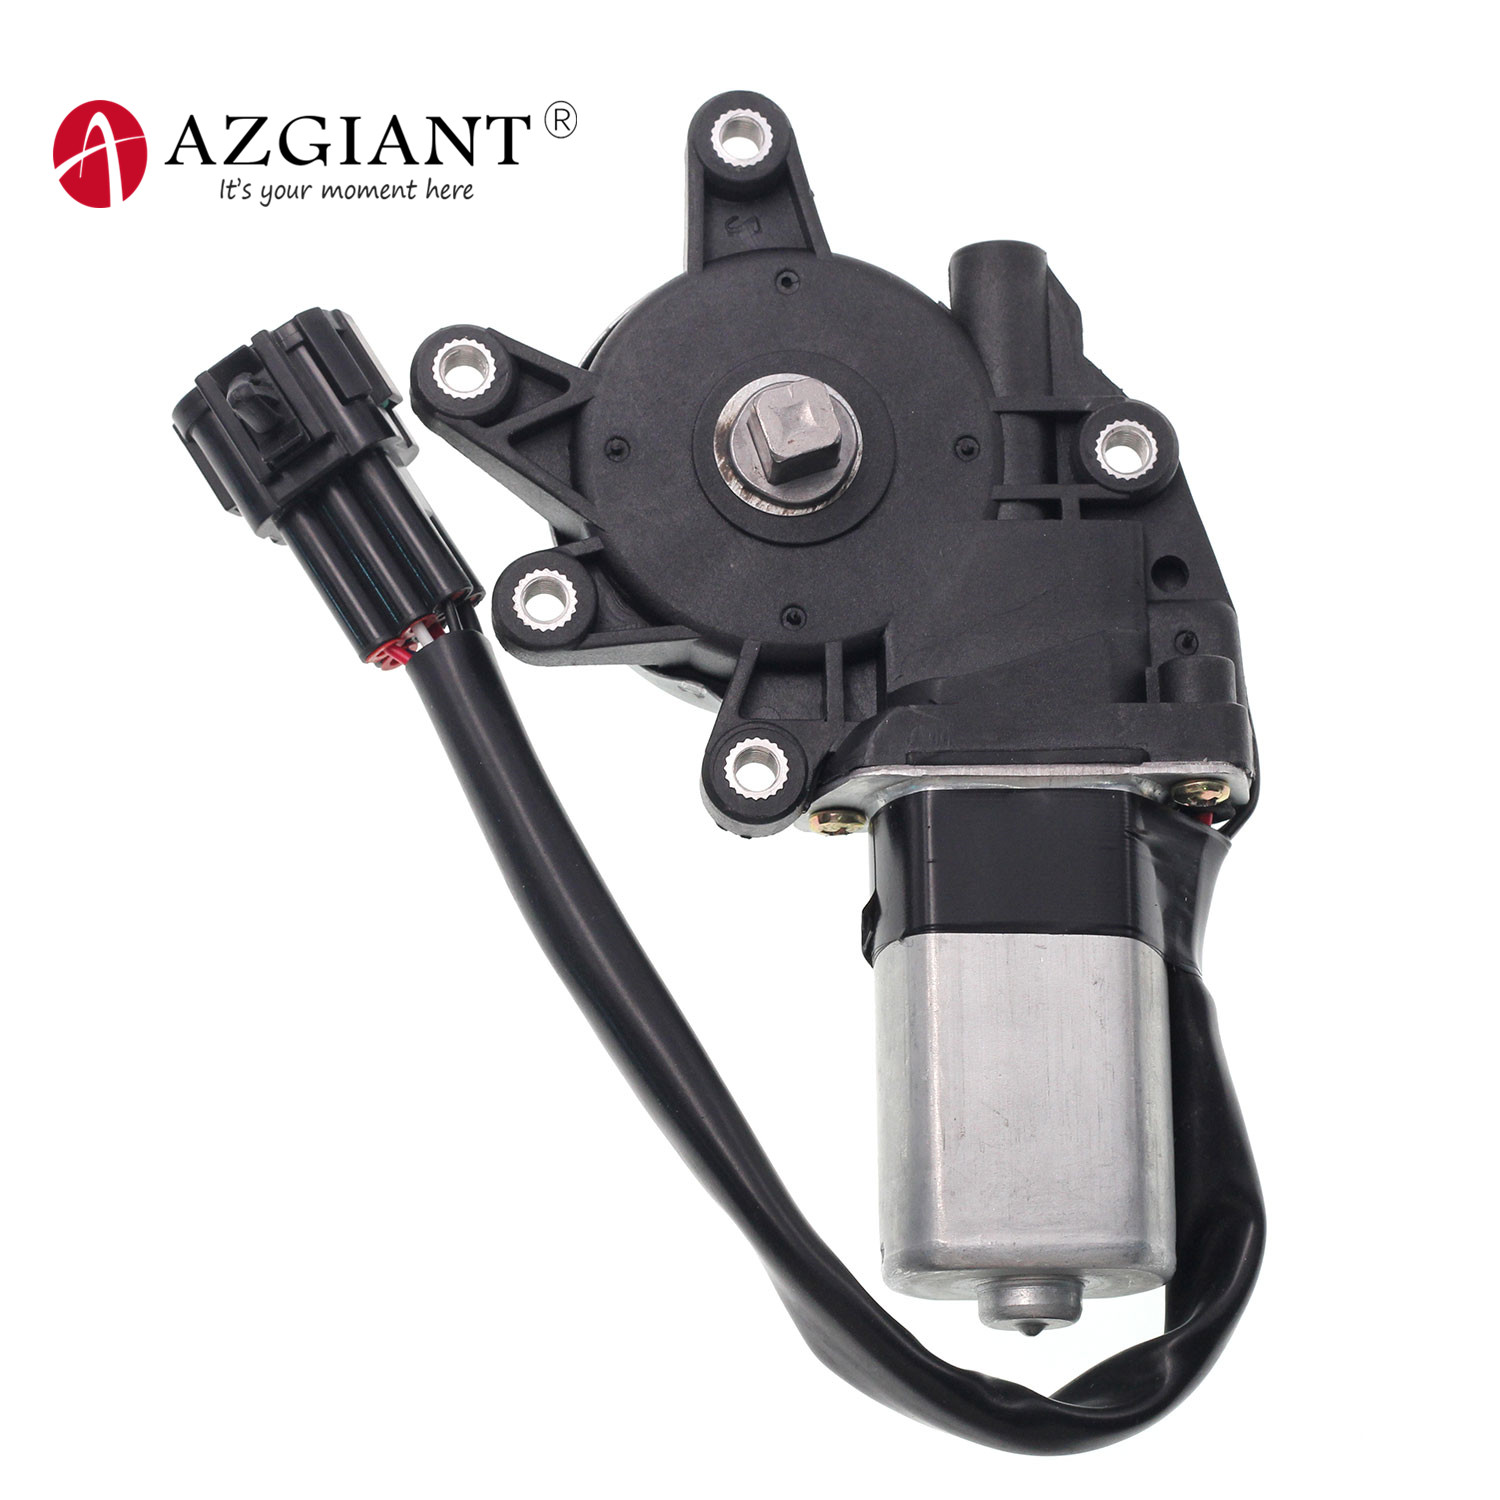 For NISSAN SYLPHY TIIDA GENISS LIVINA Electric Car Window Lifter Motor Power Window Motor Regulator Left /Right 6pin